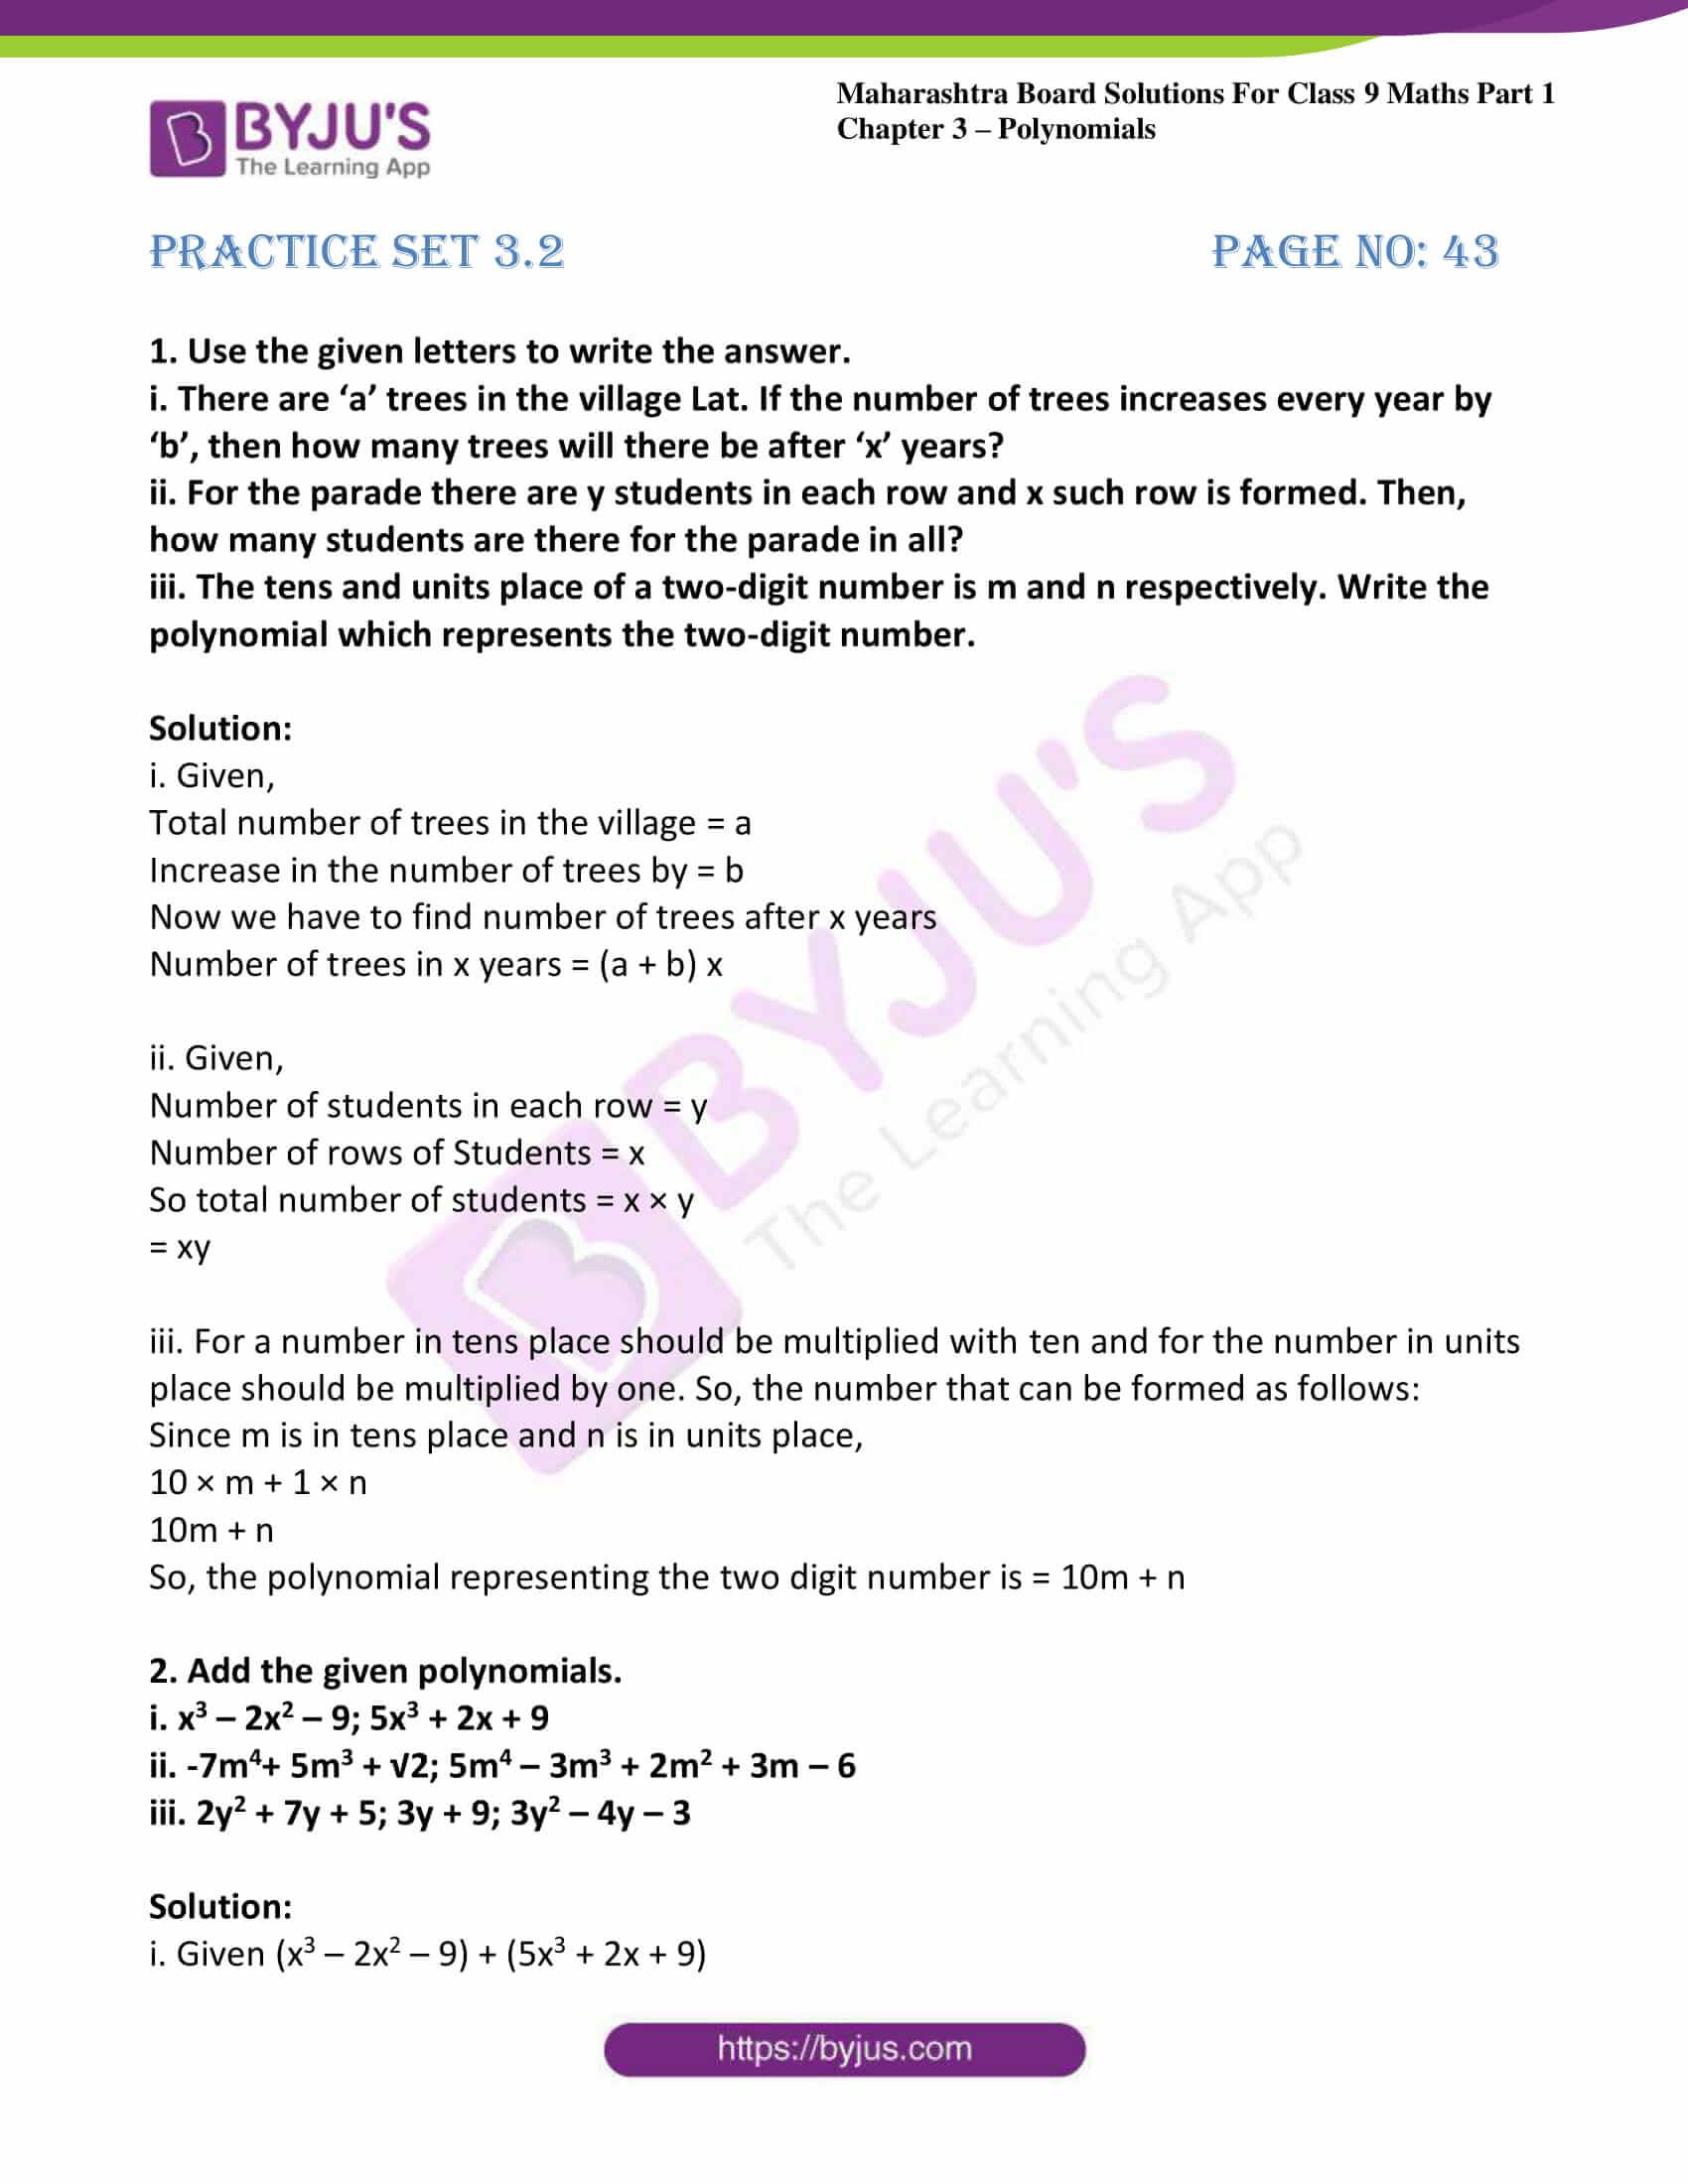 msbshse sol class 9 maths part 1 chapter 3 polynomials 08